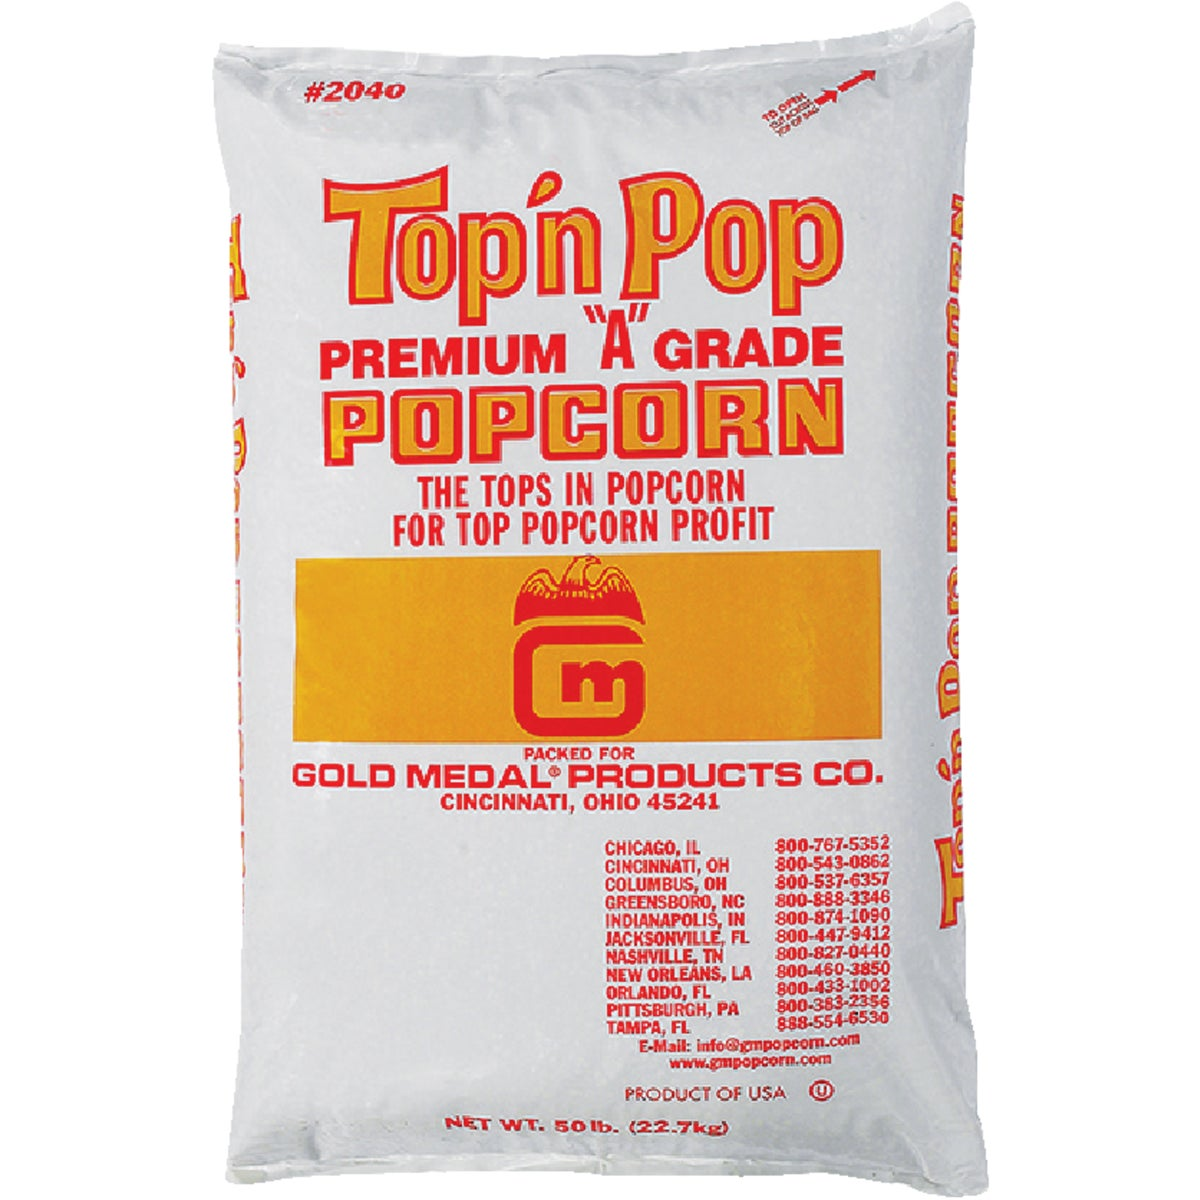 50LB BAG BULK POPCORN - 2040 by Gold Medal Prod/rntl